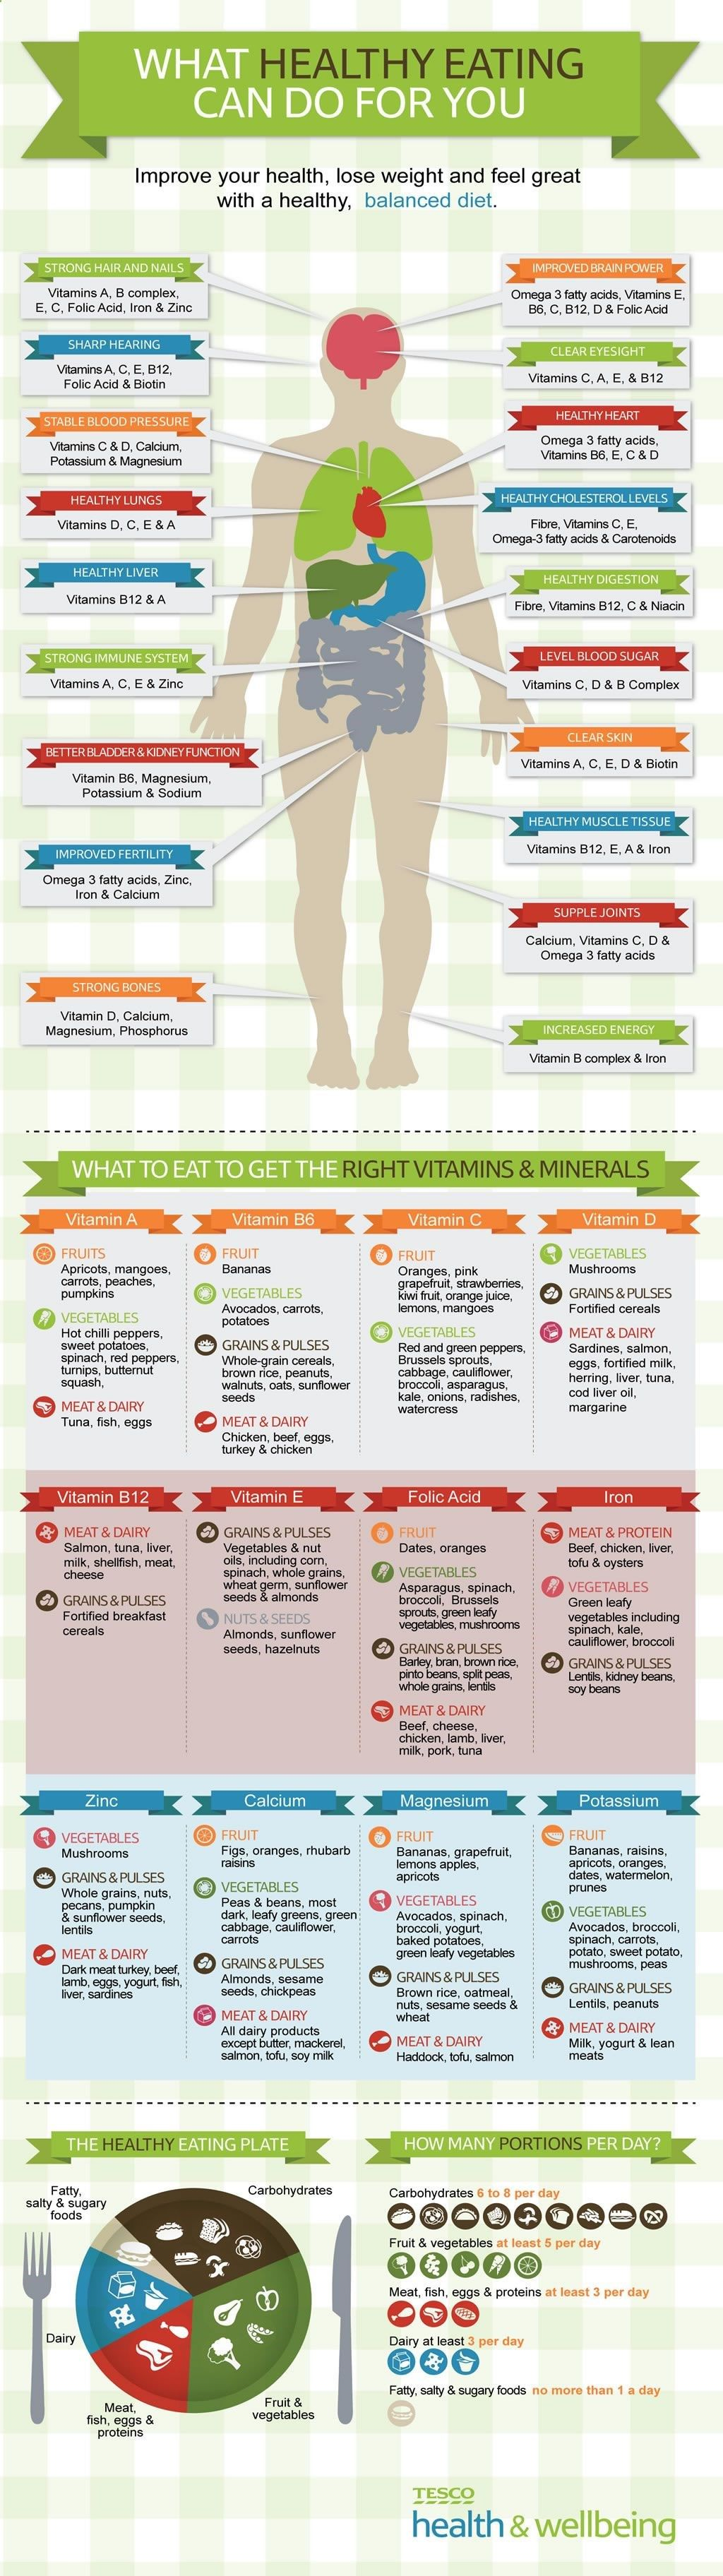 Lose Weight With Natural Vitamins And Minerals